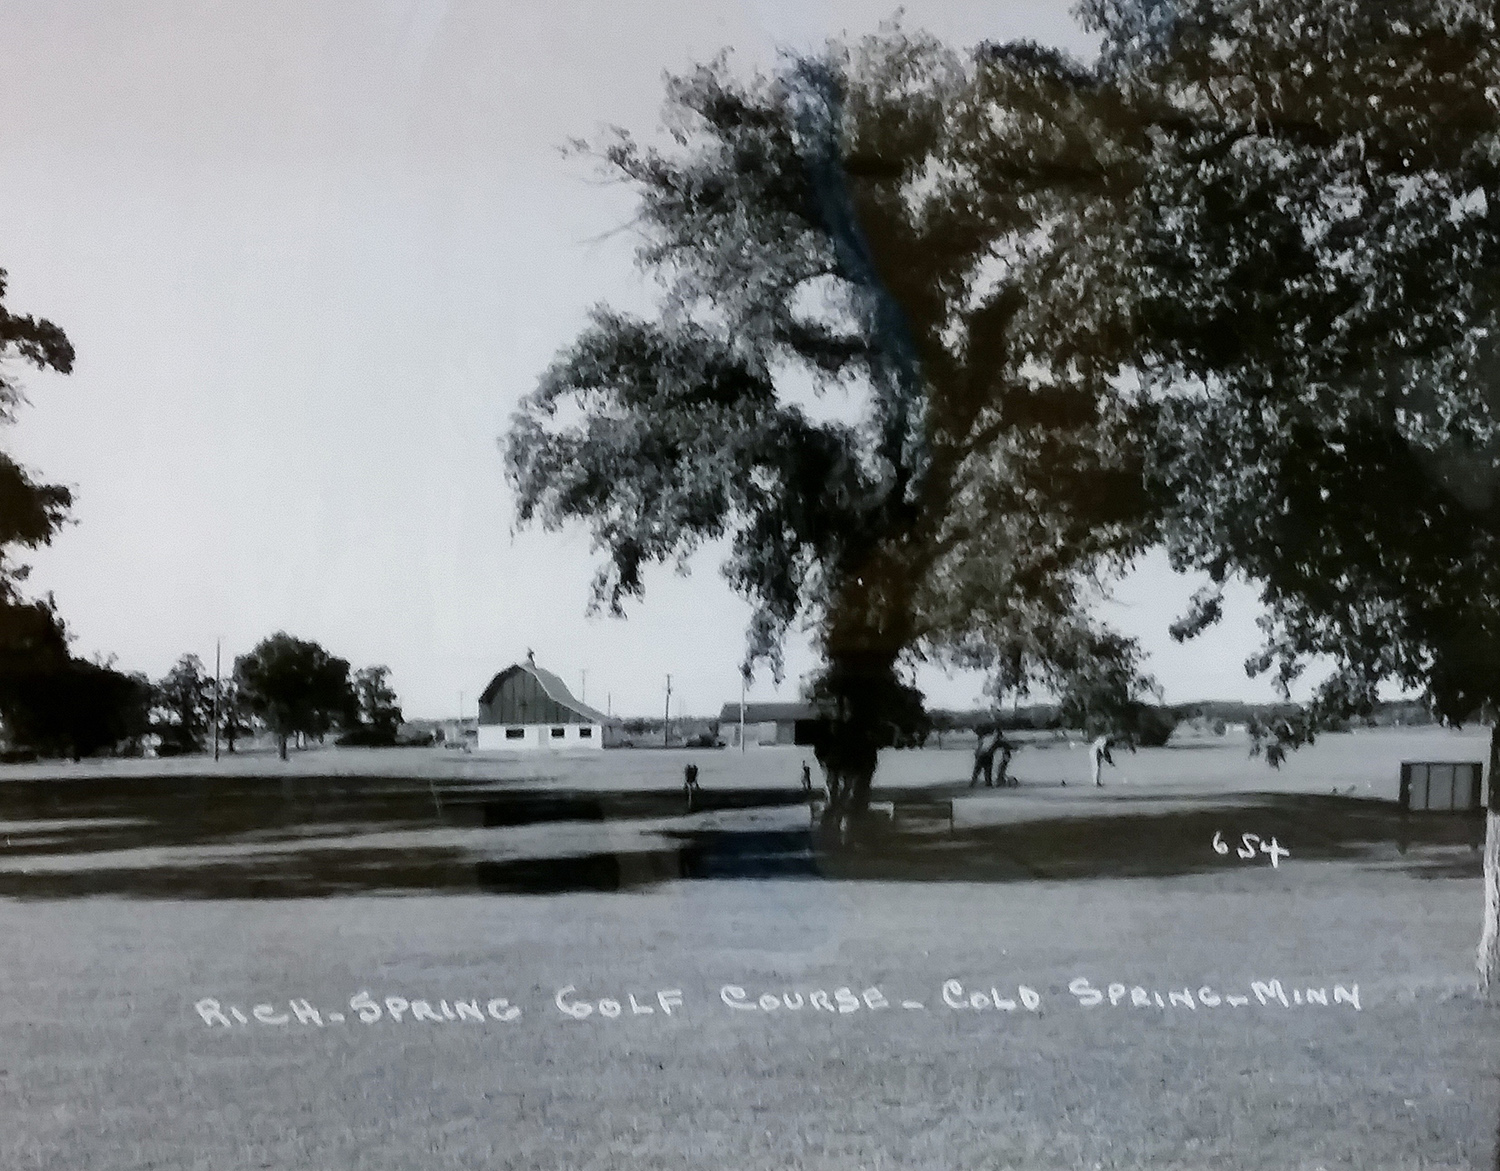 Rich-Spring Golf Club